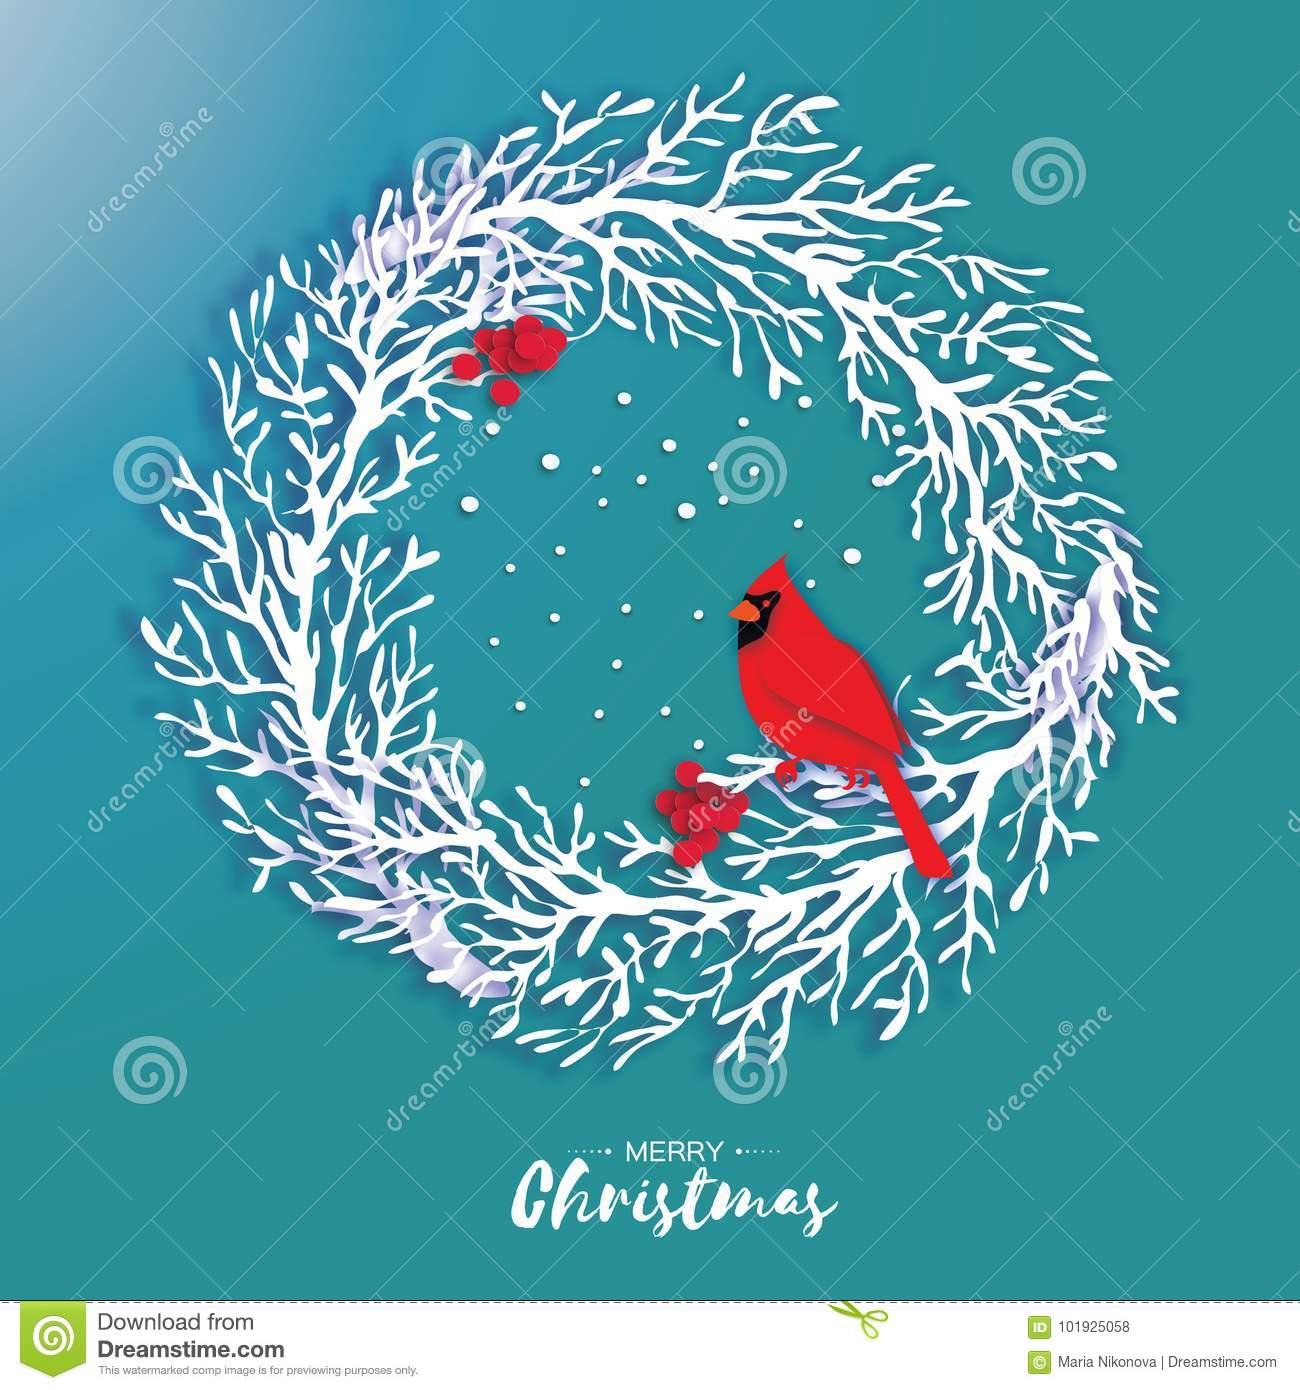 3D Origami Christmas Wreath With Red Cardinal And Rowan Berry Paper Cut Tree Branch Bird Happy New Year Winter